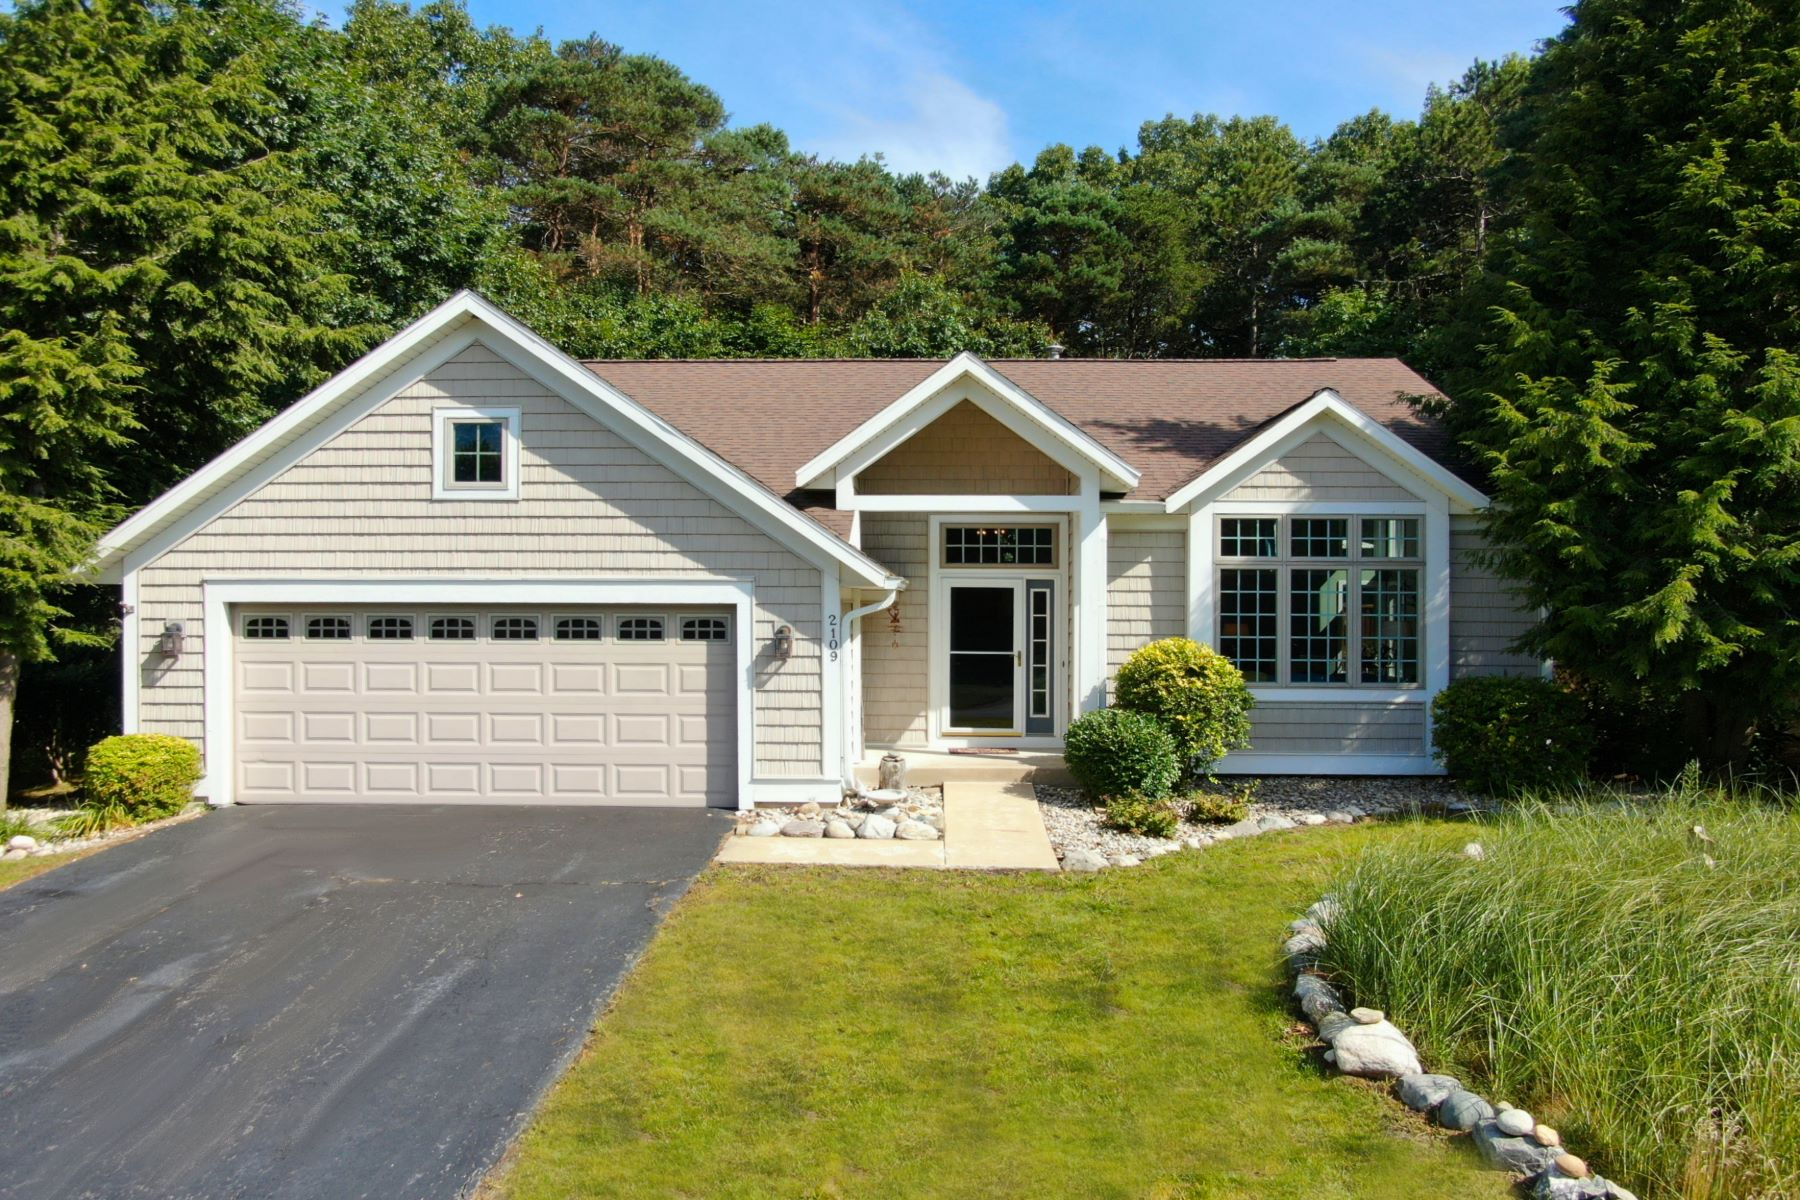 Single Family Homes for Active at Captivating Family Home in Beautiful Location 2109 Breeze Drive Holland, Michigan 49424 United States